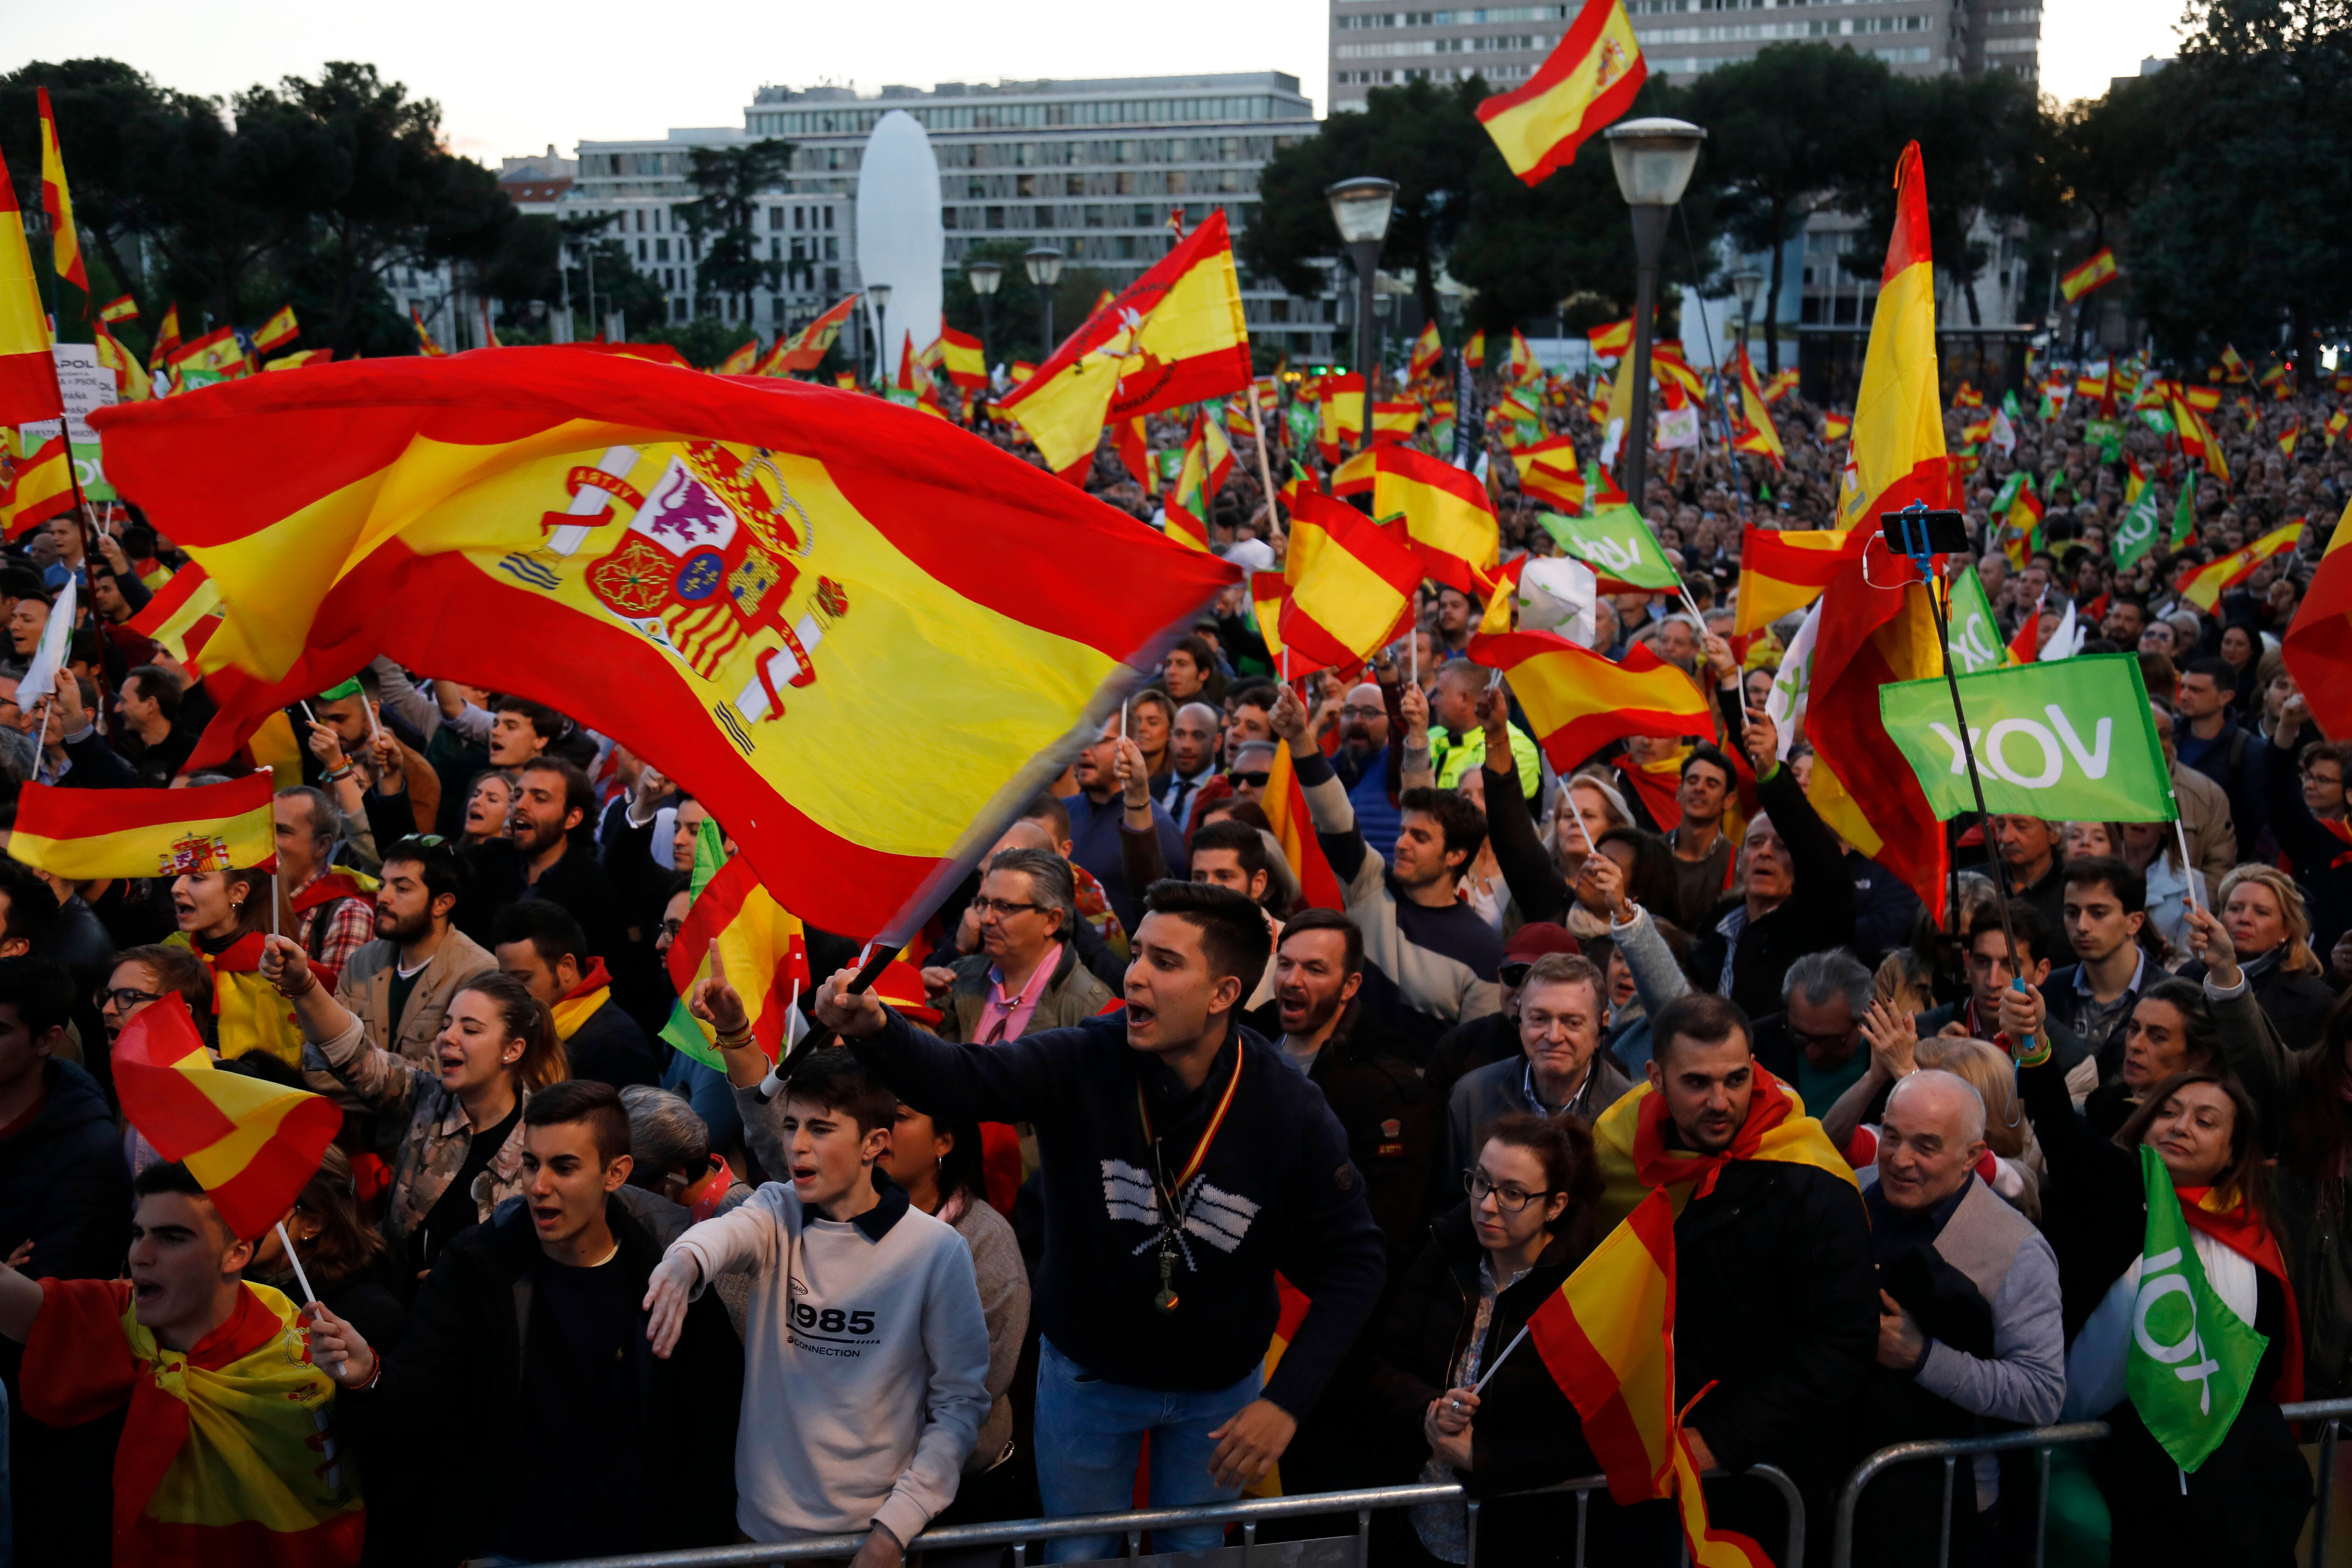 Spain General Election: Far-Right Vox Party Poised To Enter Parliament